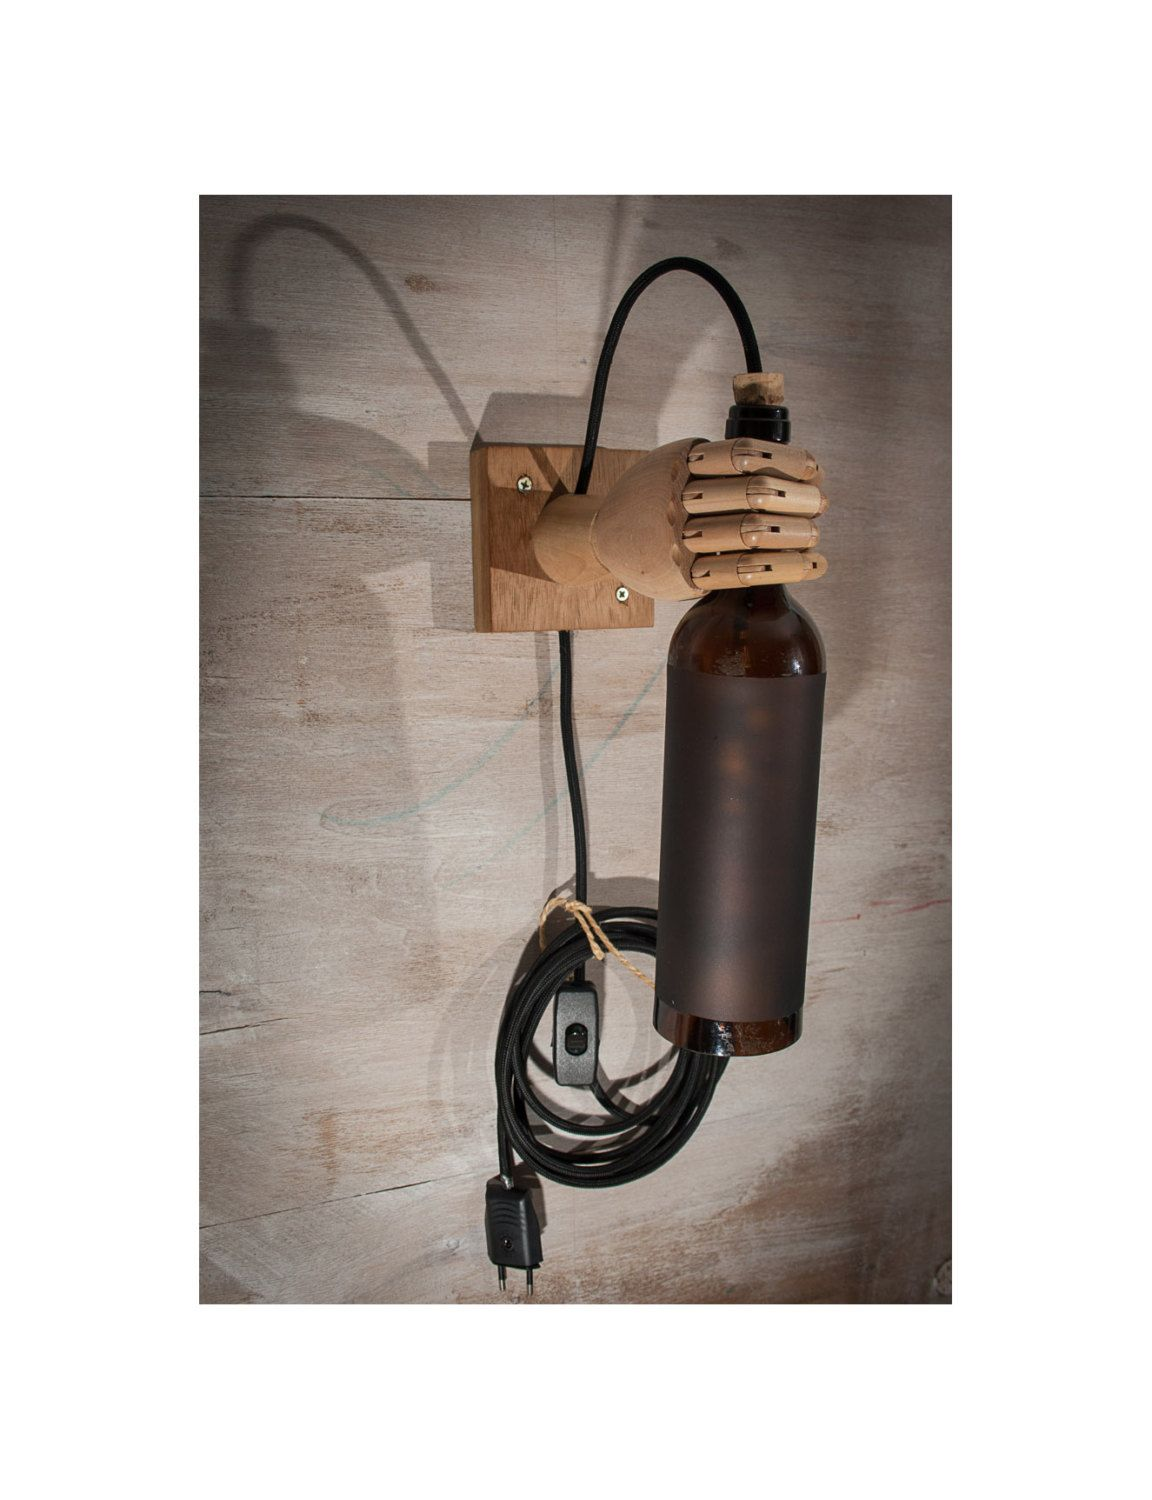 Brown Wine Bottle Light Wall Sconce Wood Lamp Wall Light Wine Bottle Bottle Lamp Hand Lamp Lighting Wine Bottle Lights Brown Hand Pared De Botellas De Vino Lamparas De Pared Y